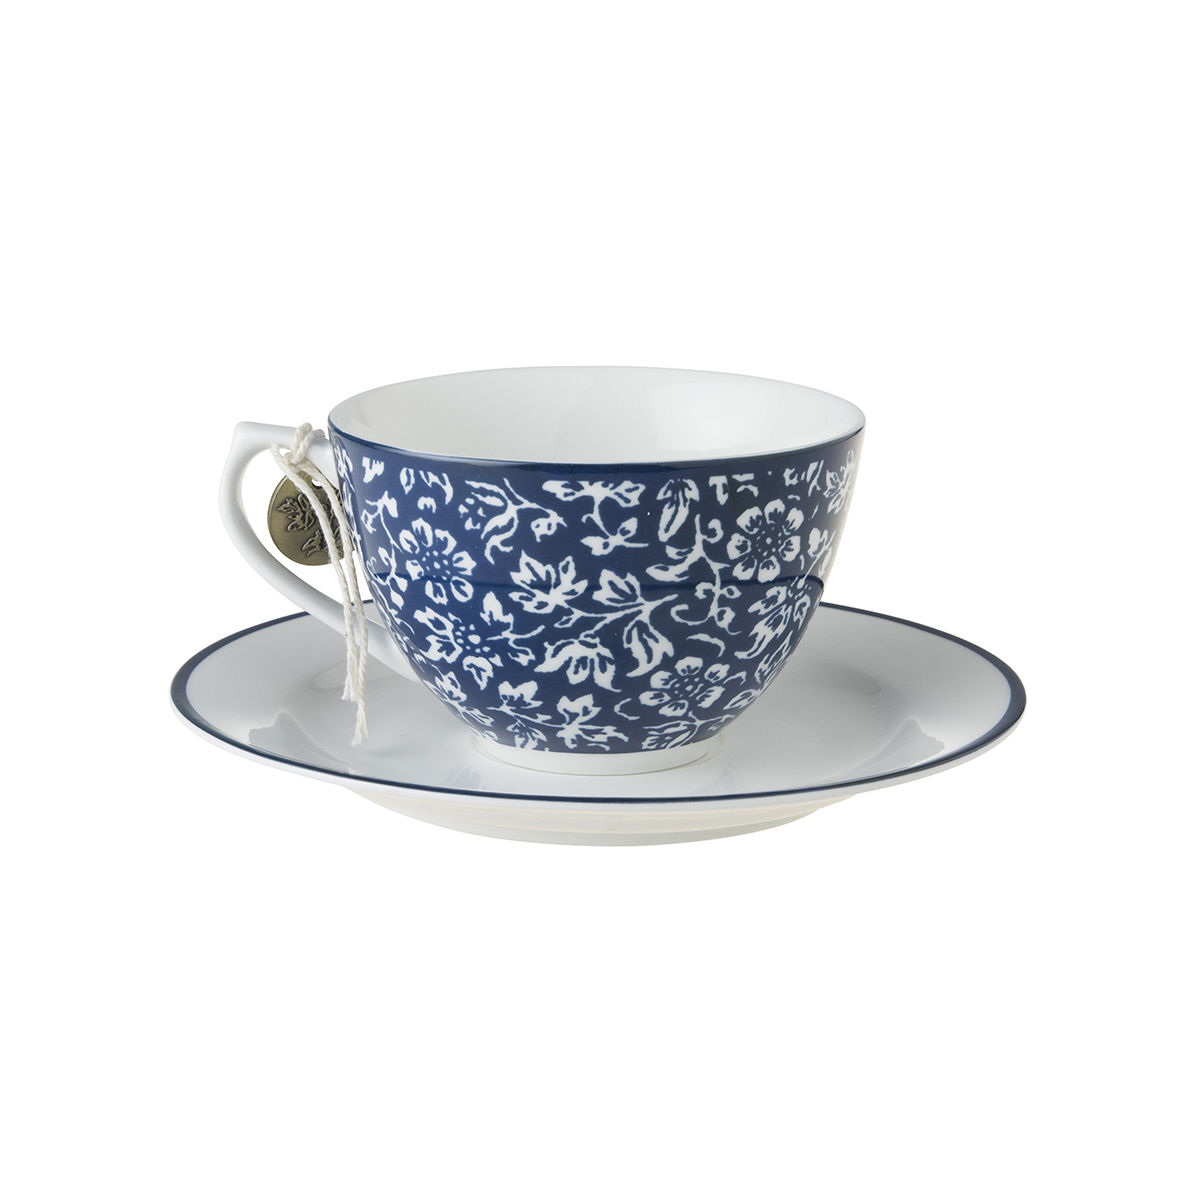 Laura Ashley 8.8oz Cup and  Saucer Sweet Allysum - product images  of